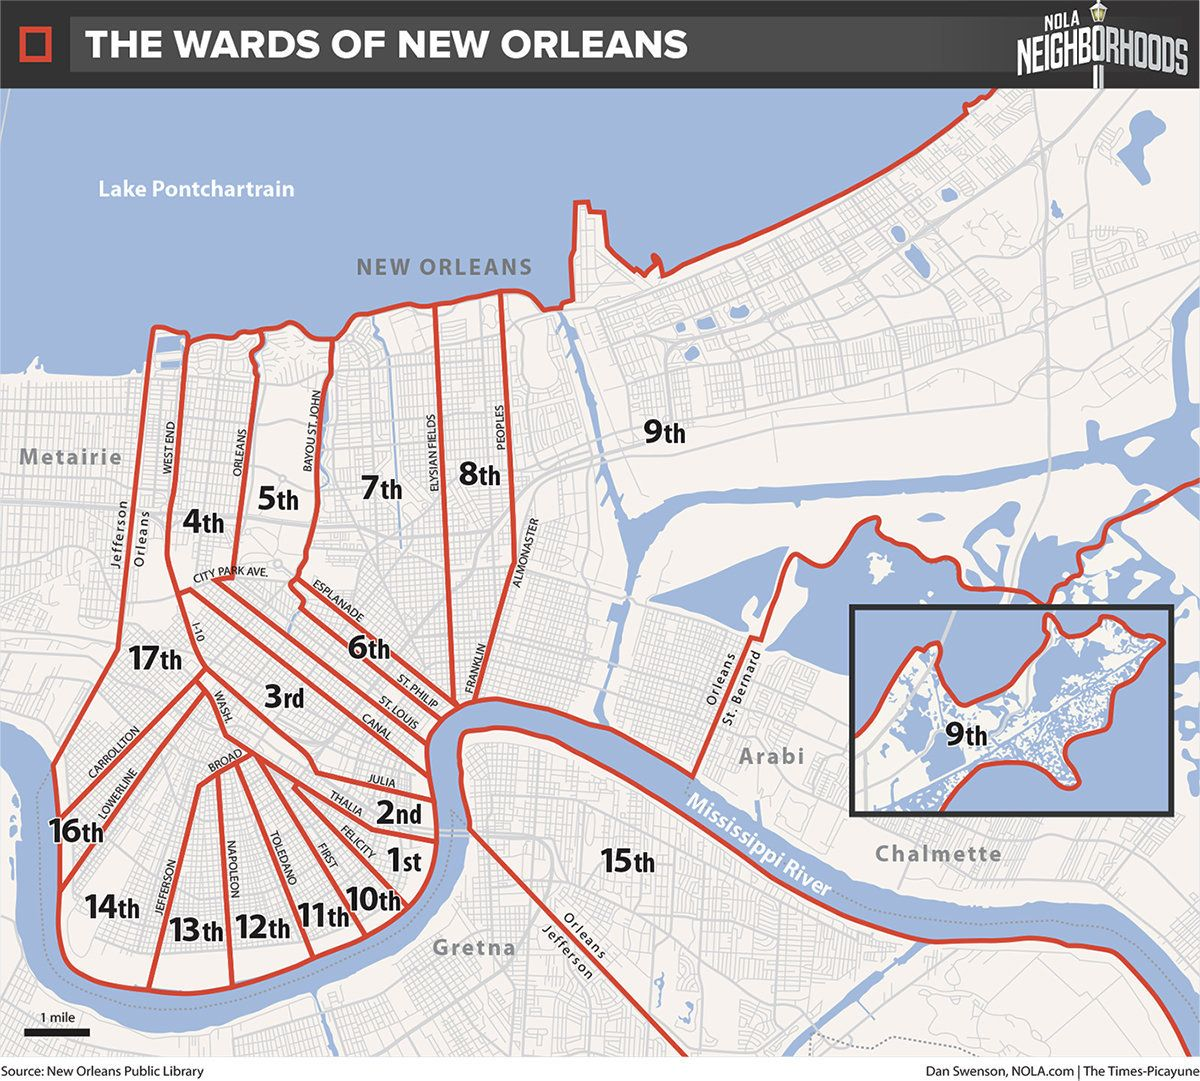 map new orleans districts 1850s Districts Of New Orleans New Orleans Map New Orleans map new orleans districts